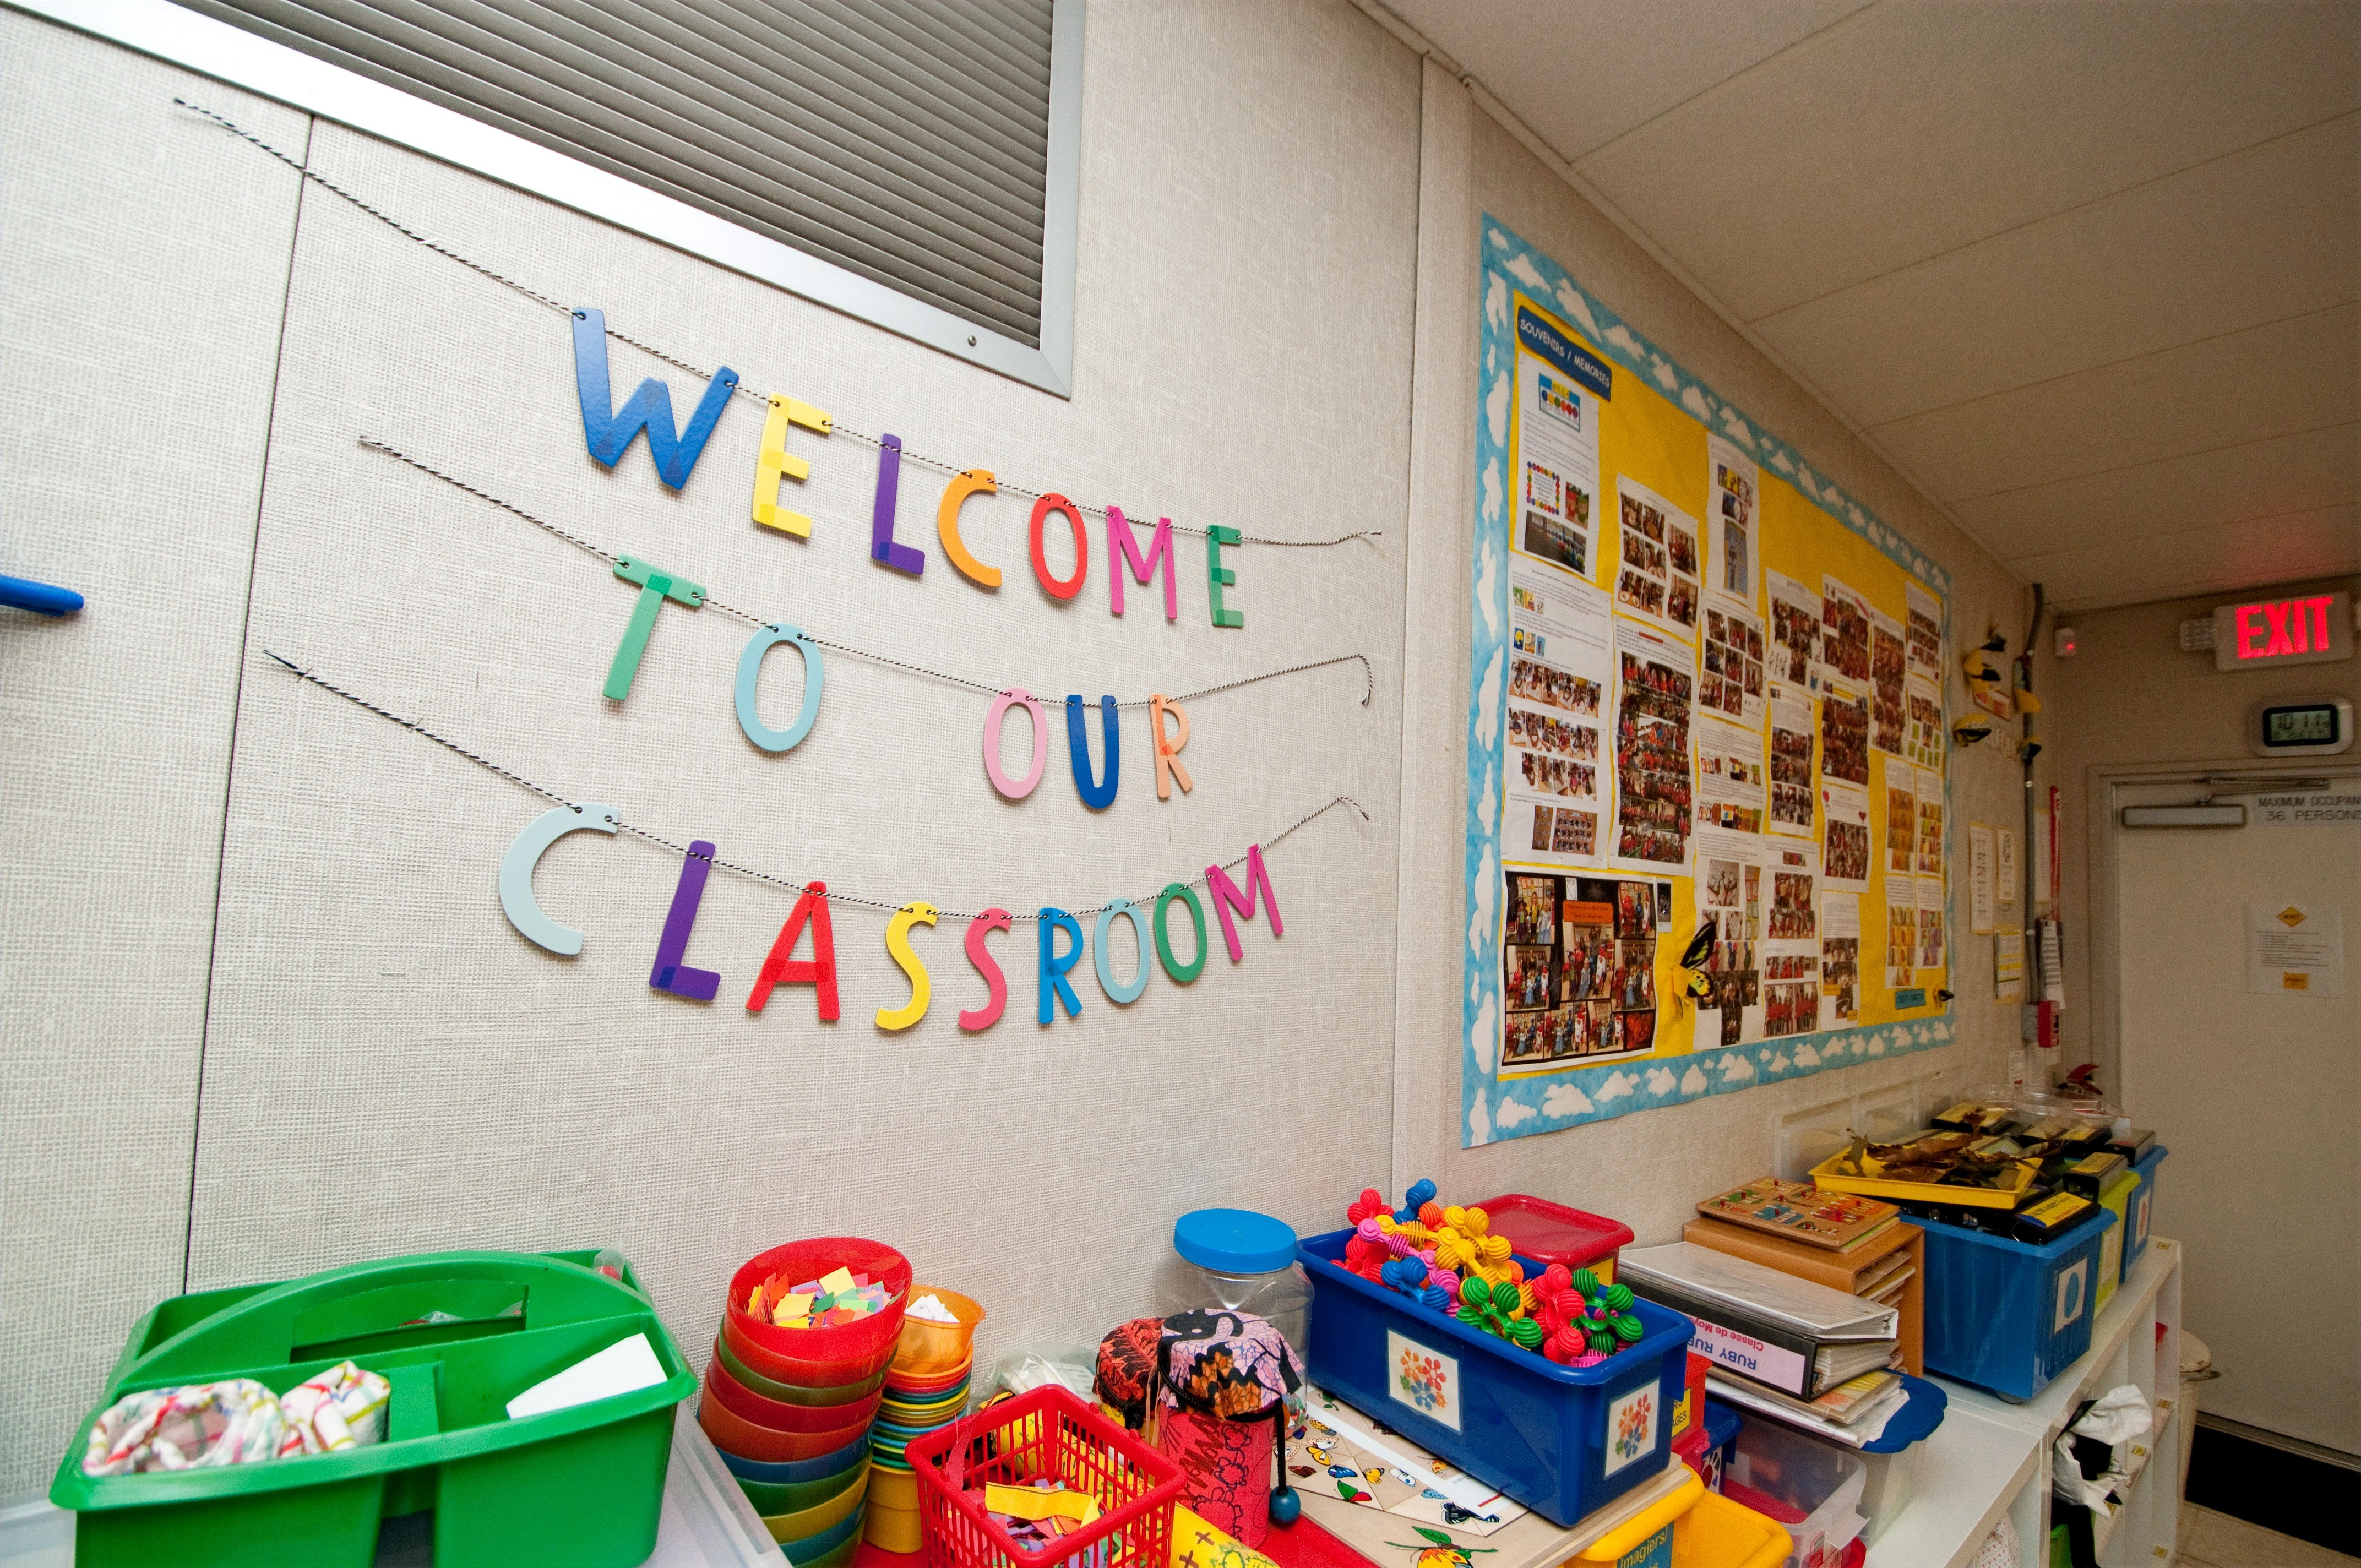 Schedule an in-person school tour